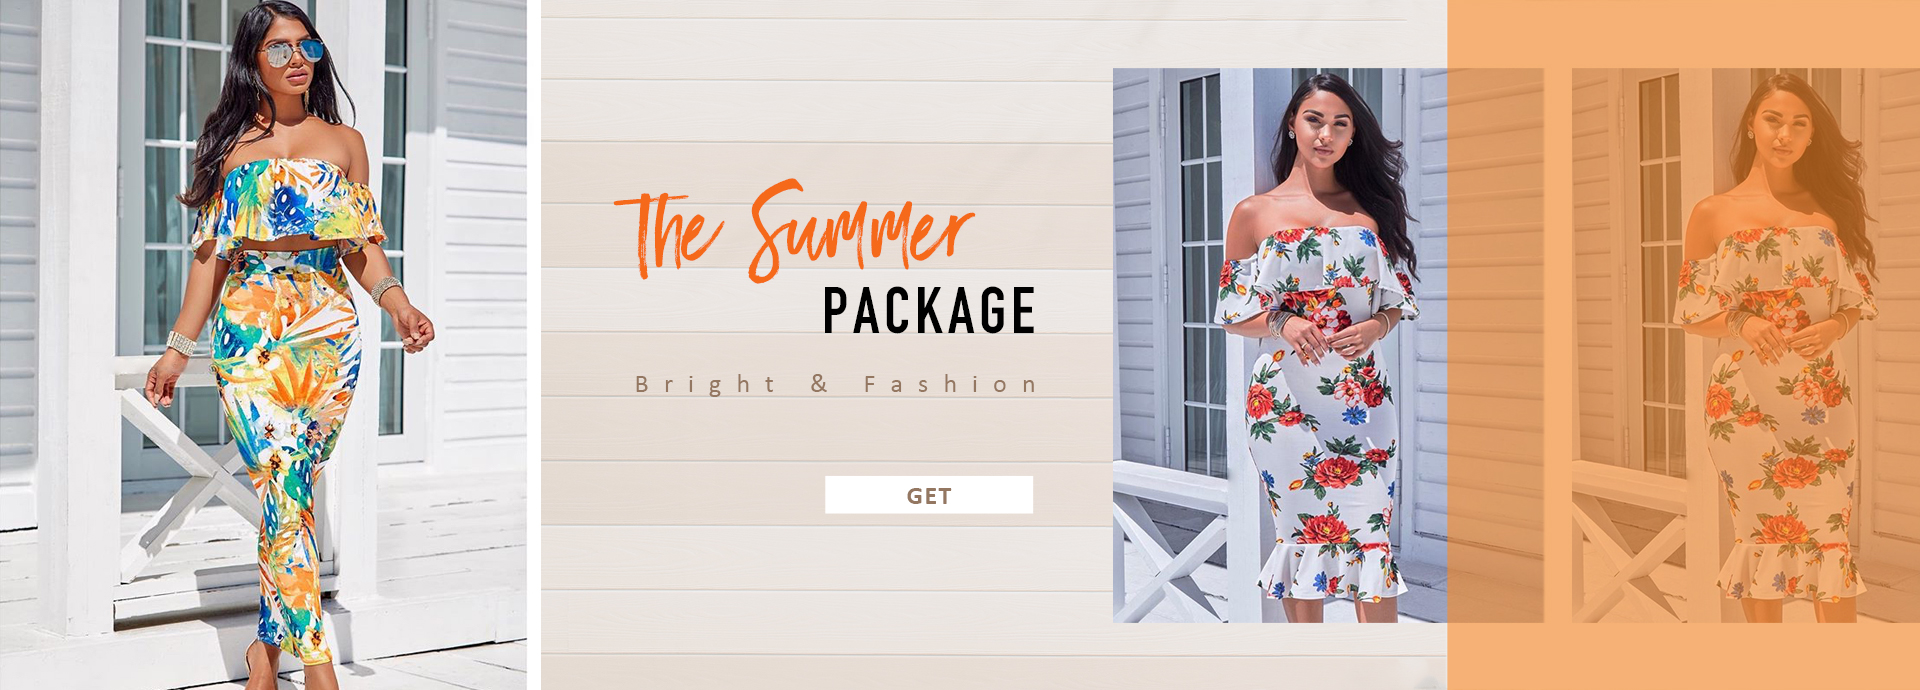 The Summer Package